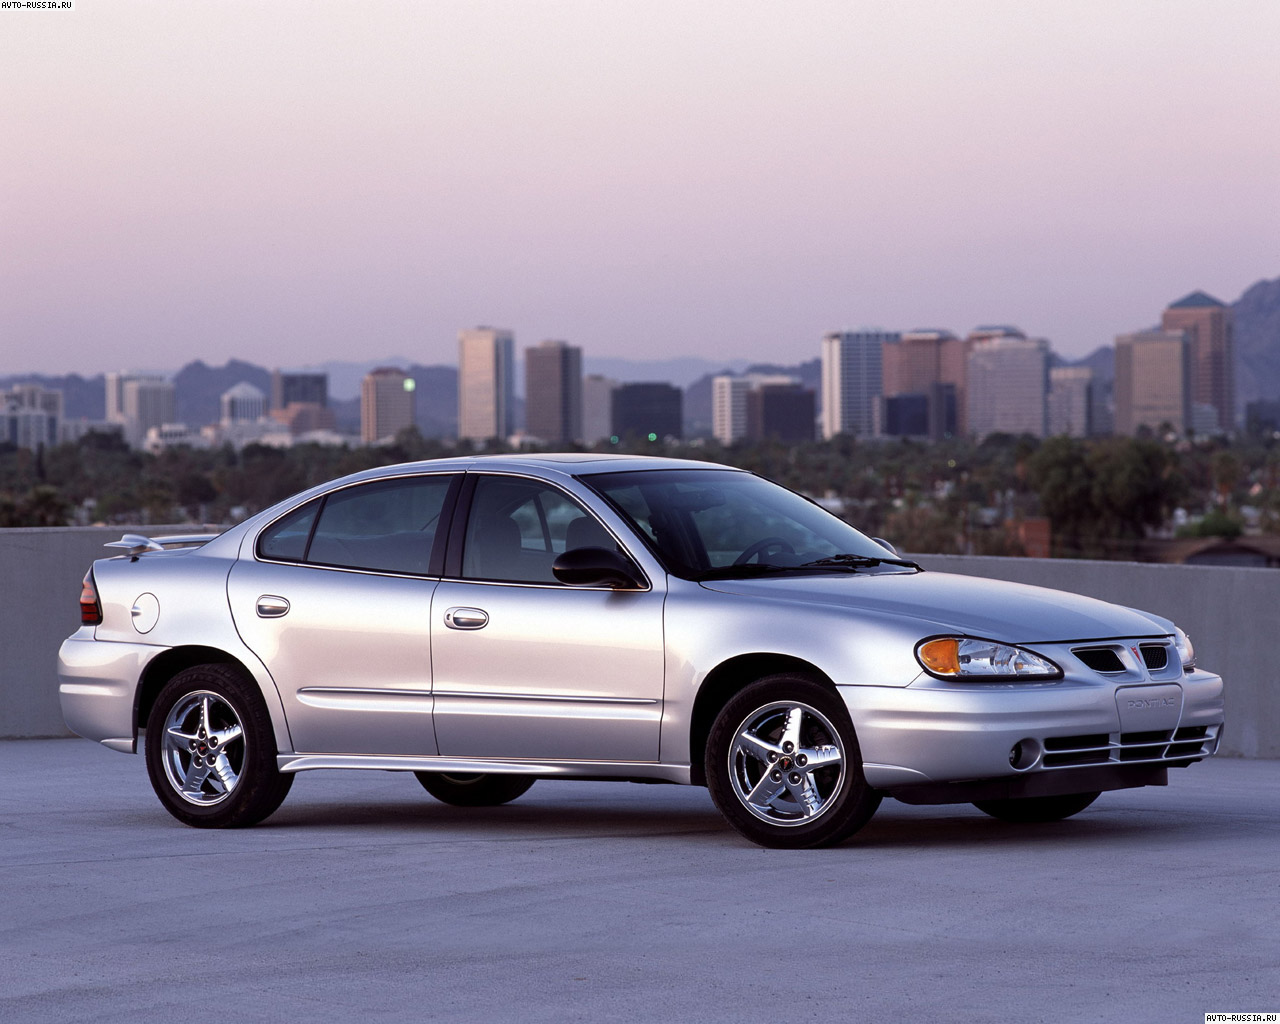 Pontiac Grand Am: 7 фото